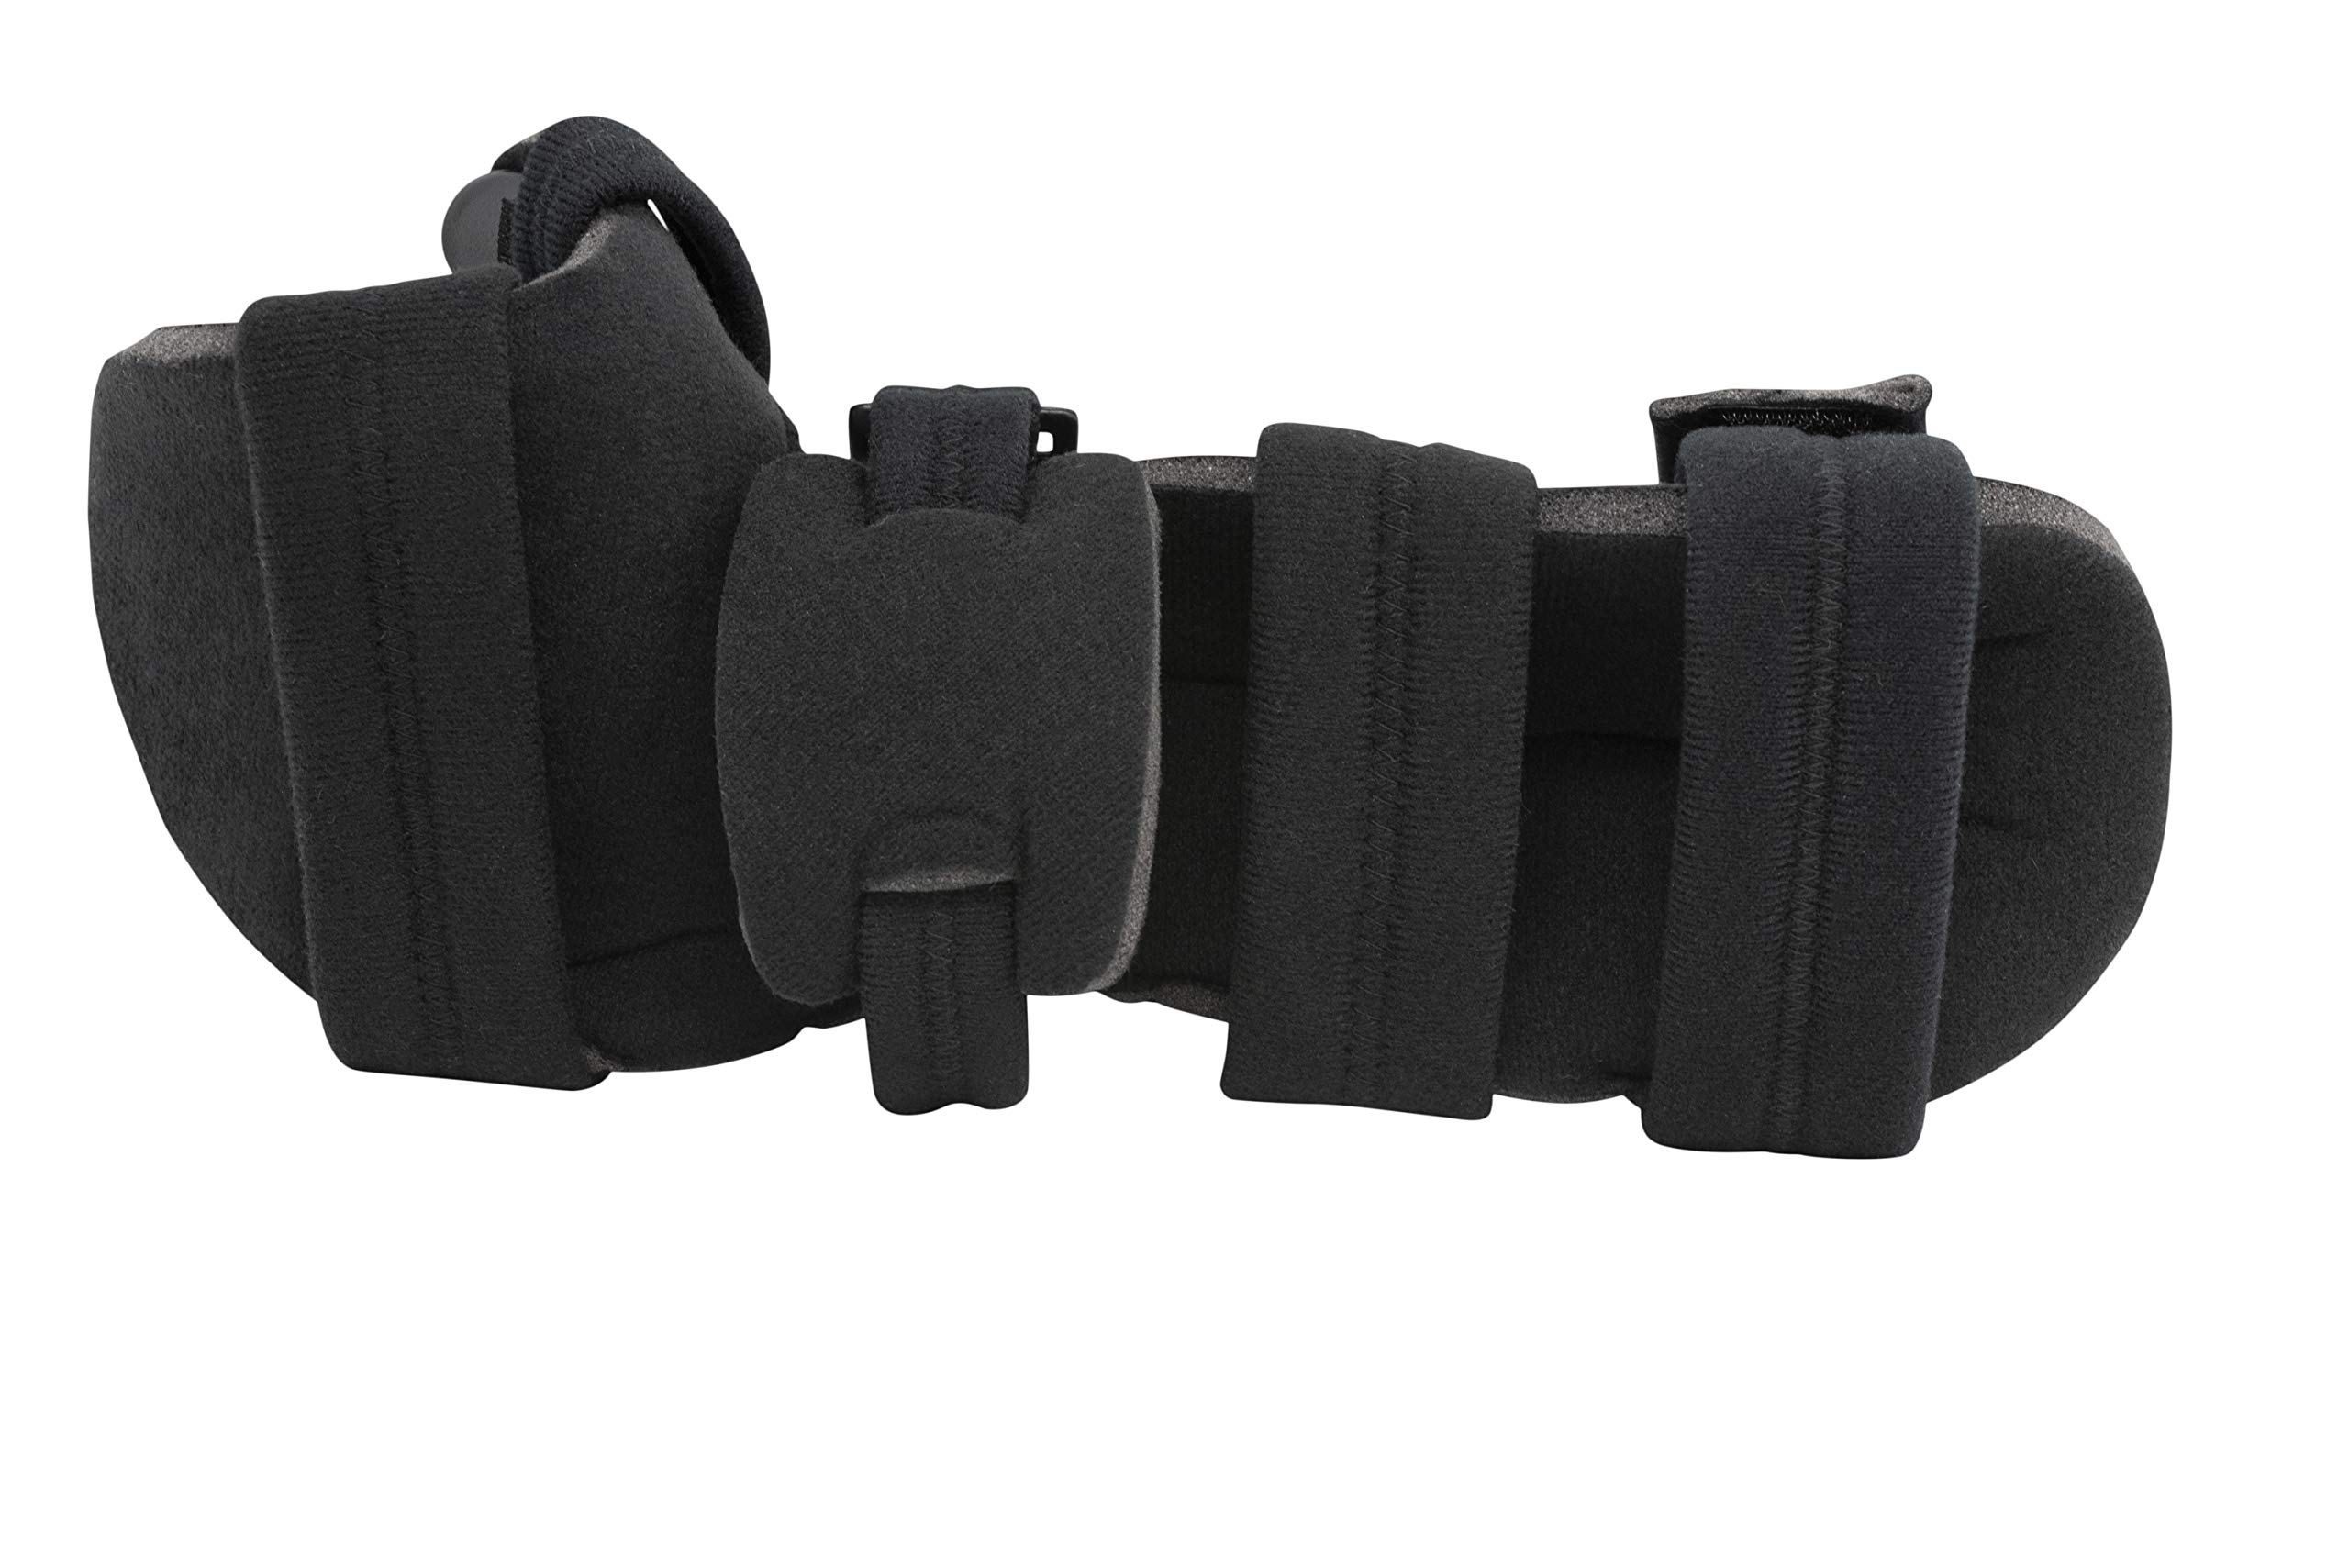 Stroke Hand Splint- Soft Resting Hand Splint for Flexion Contractures, Comfortably Stretch and Rest Hands for Long Term Ease with Functional Hand Splint, an American Heritage Industries(Left, Small) by American Heritage Industries (Image #6)